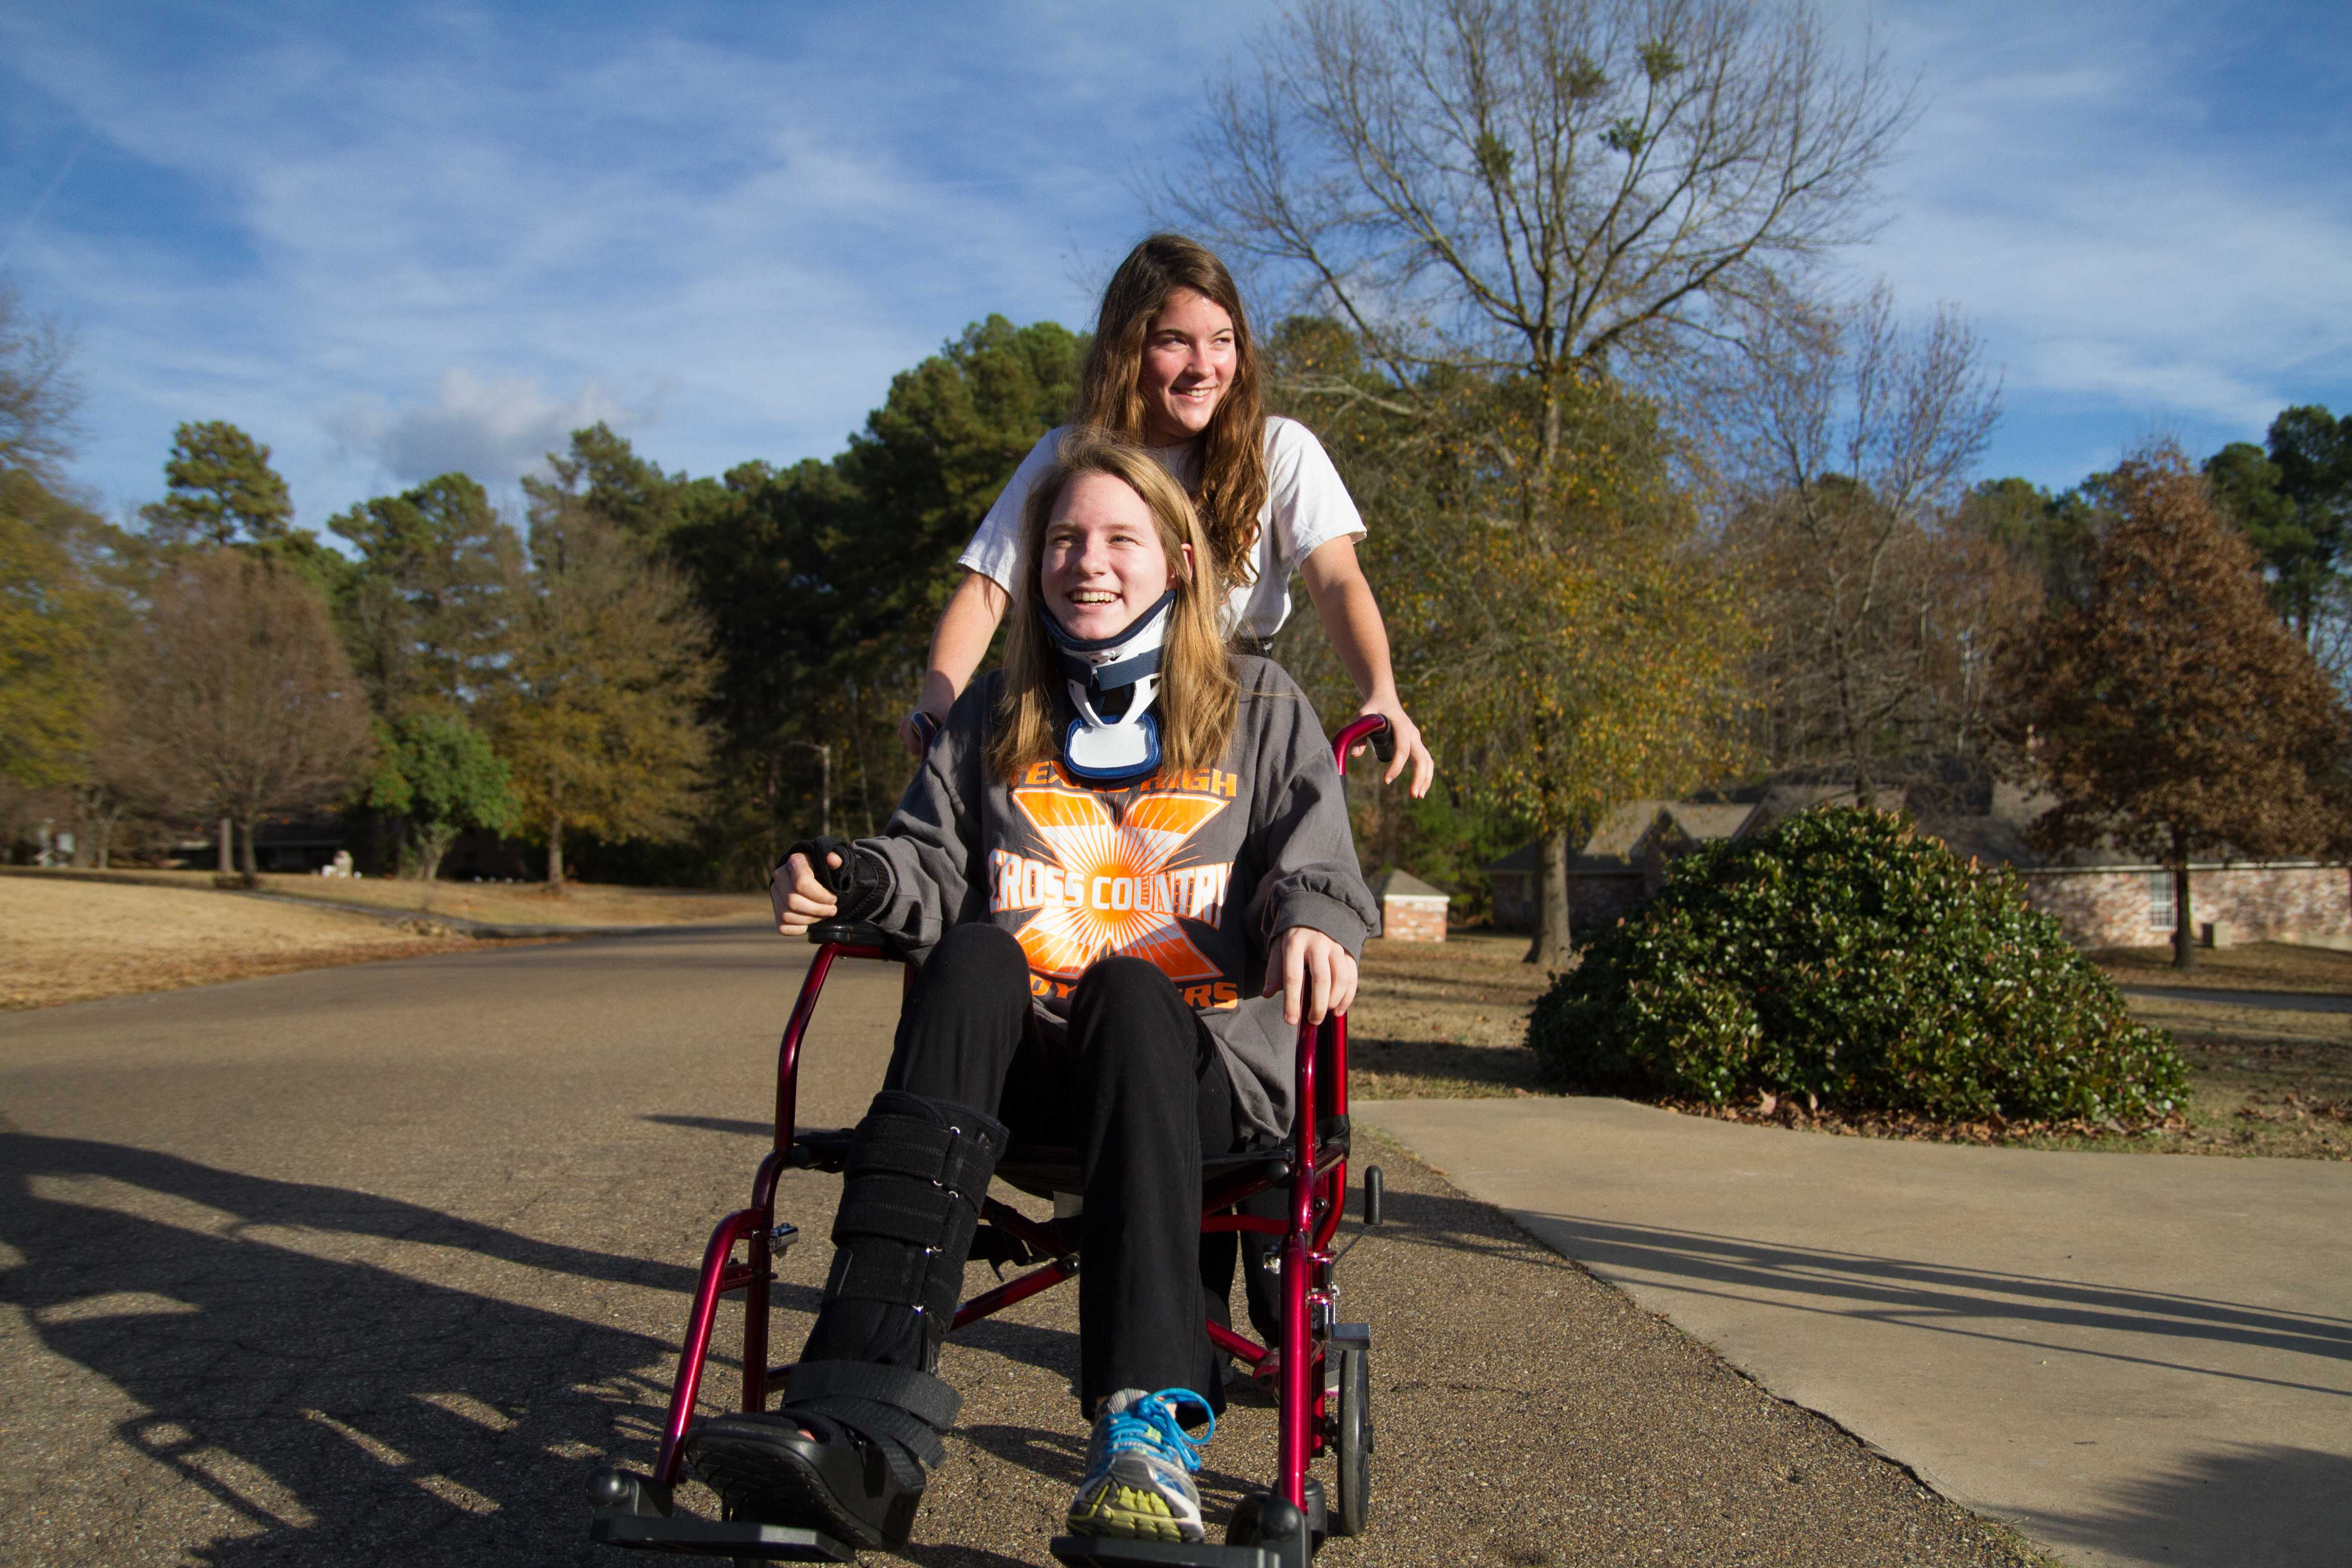 Paige Gibbert helps sister Lauren Gibbert by pushing her in a wheelchair